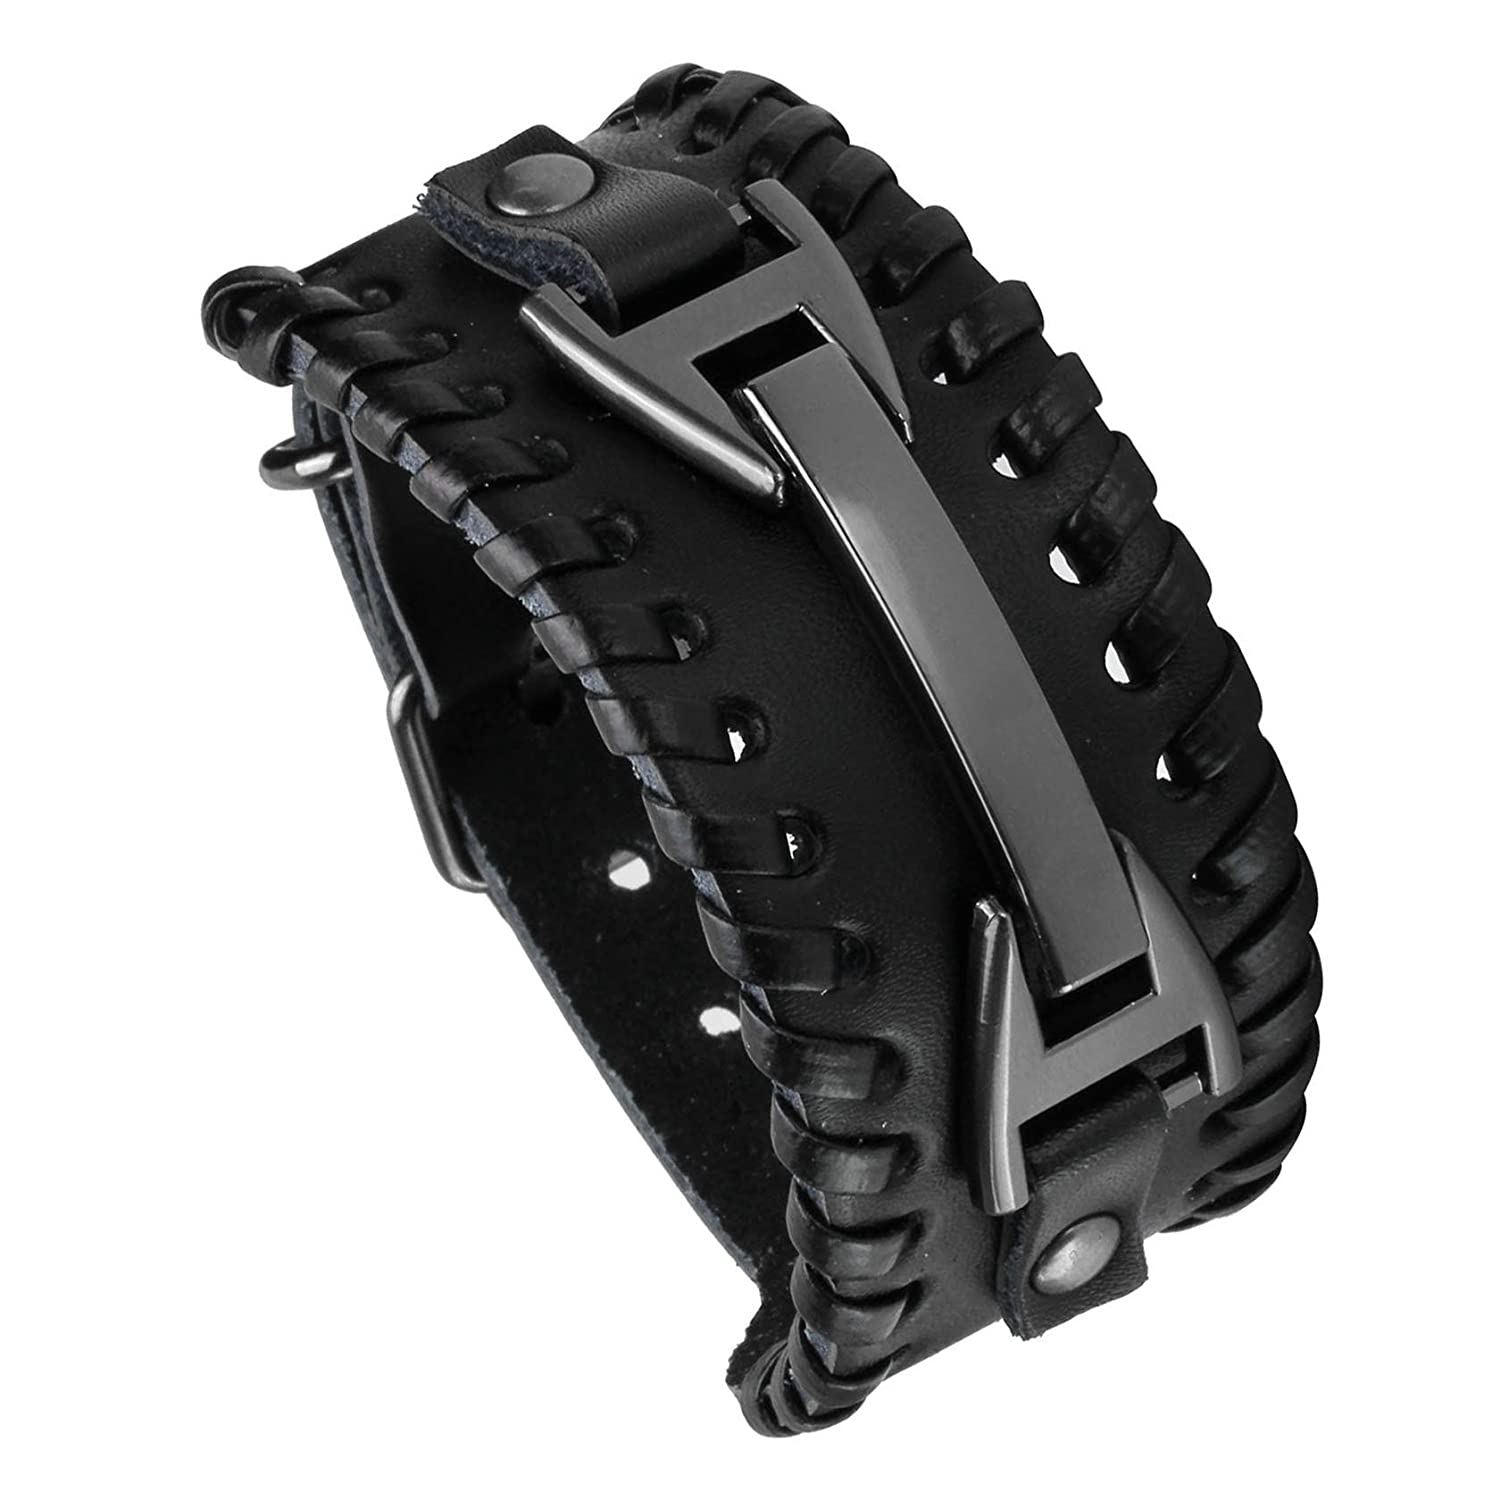 MILAKOO Black Metal Spike Studded Punk Rock Biker Wide Strap Leather Bracelet Chain Wristband Adjustable B07D7VWCH1_US